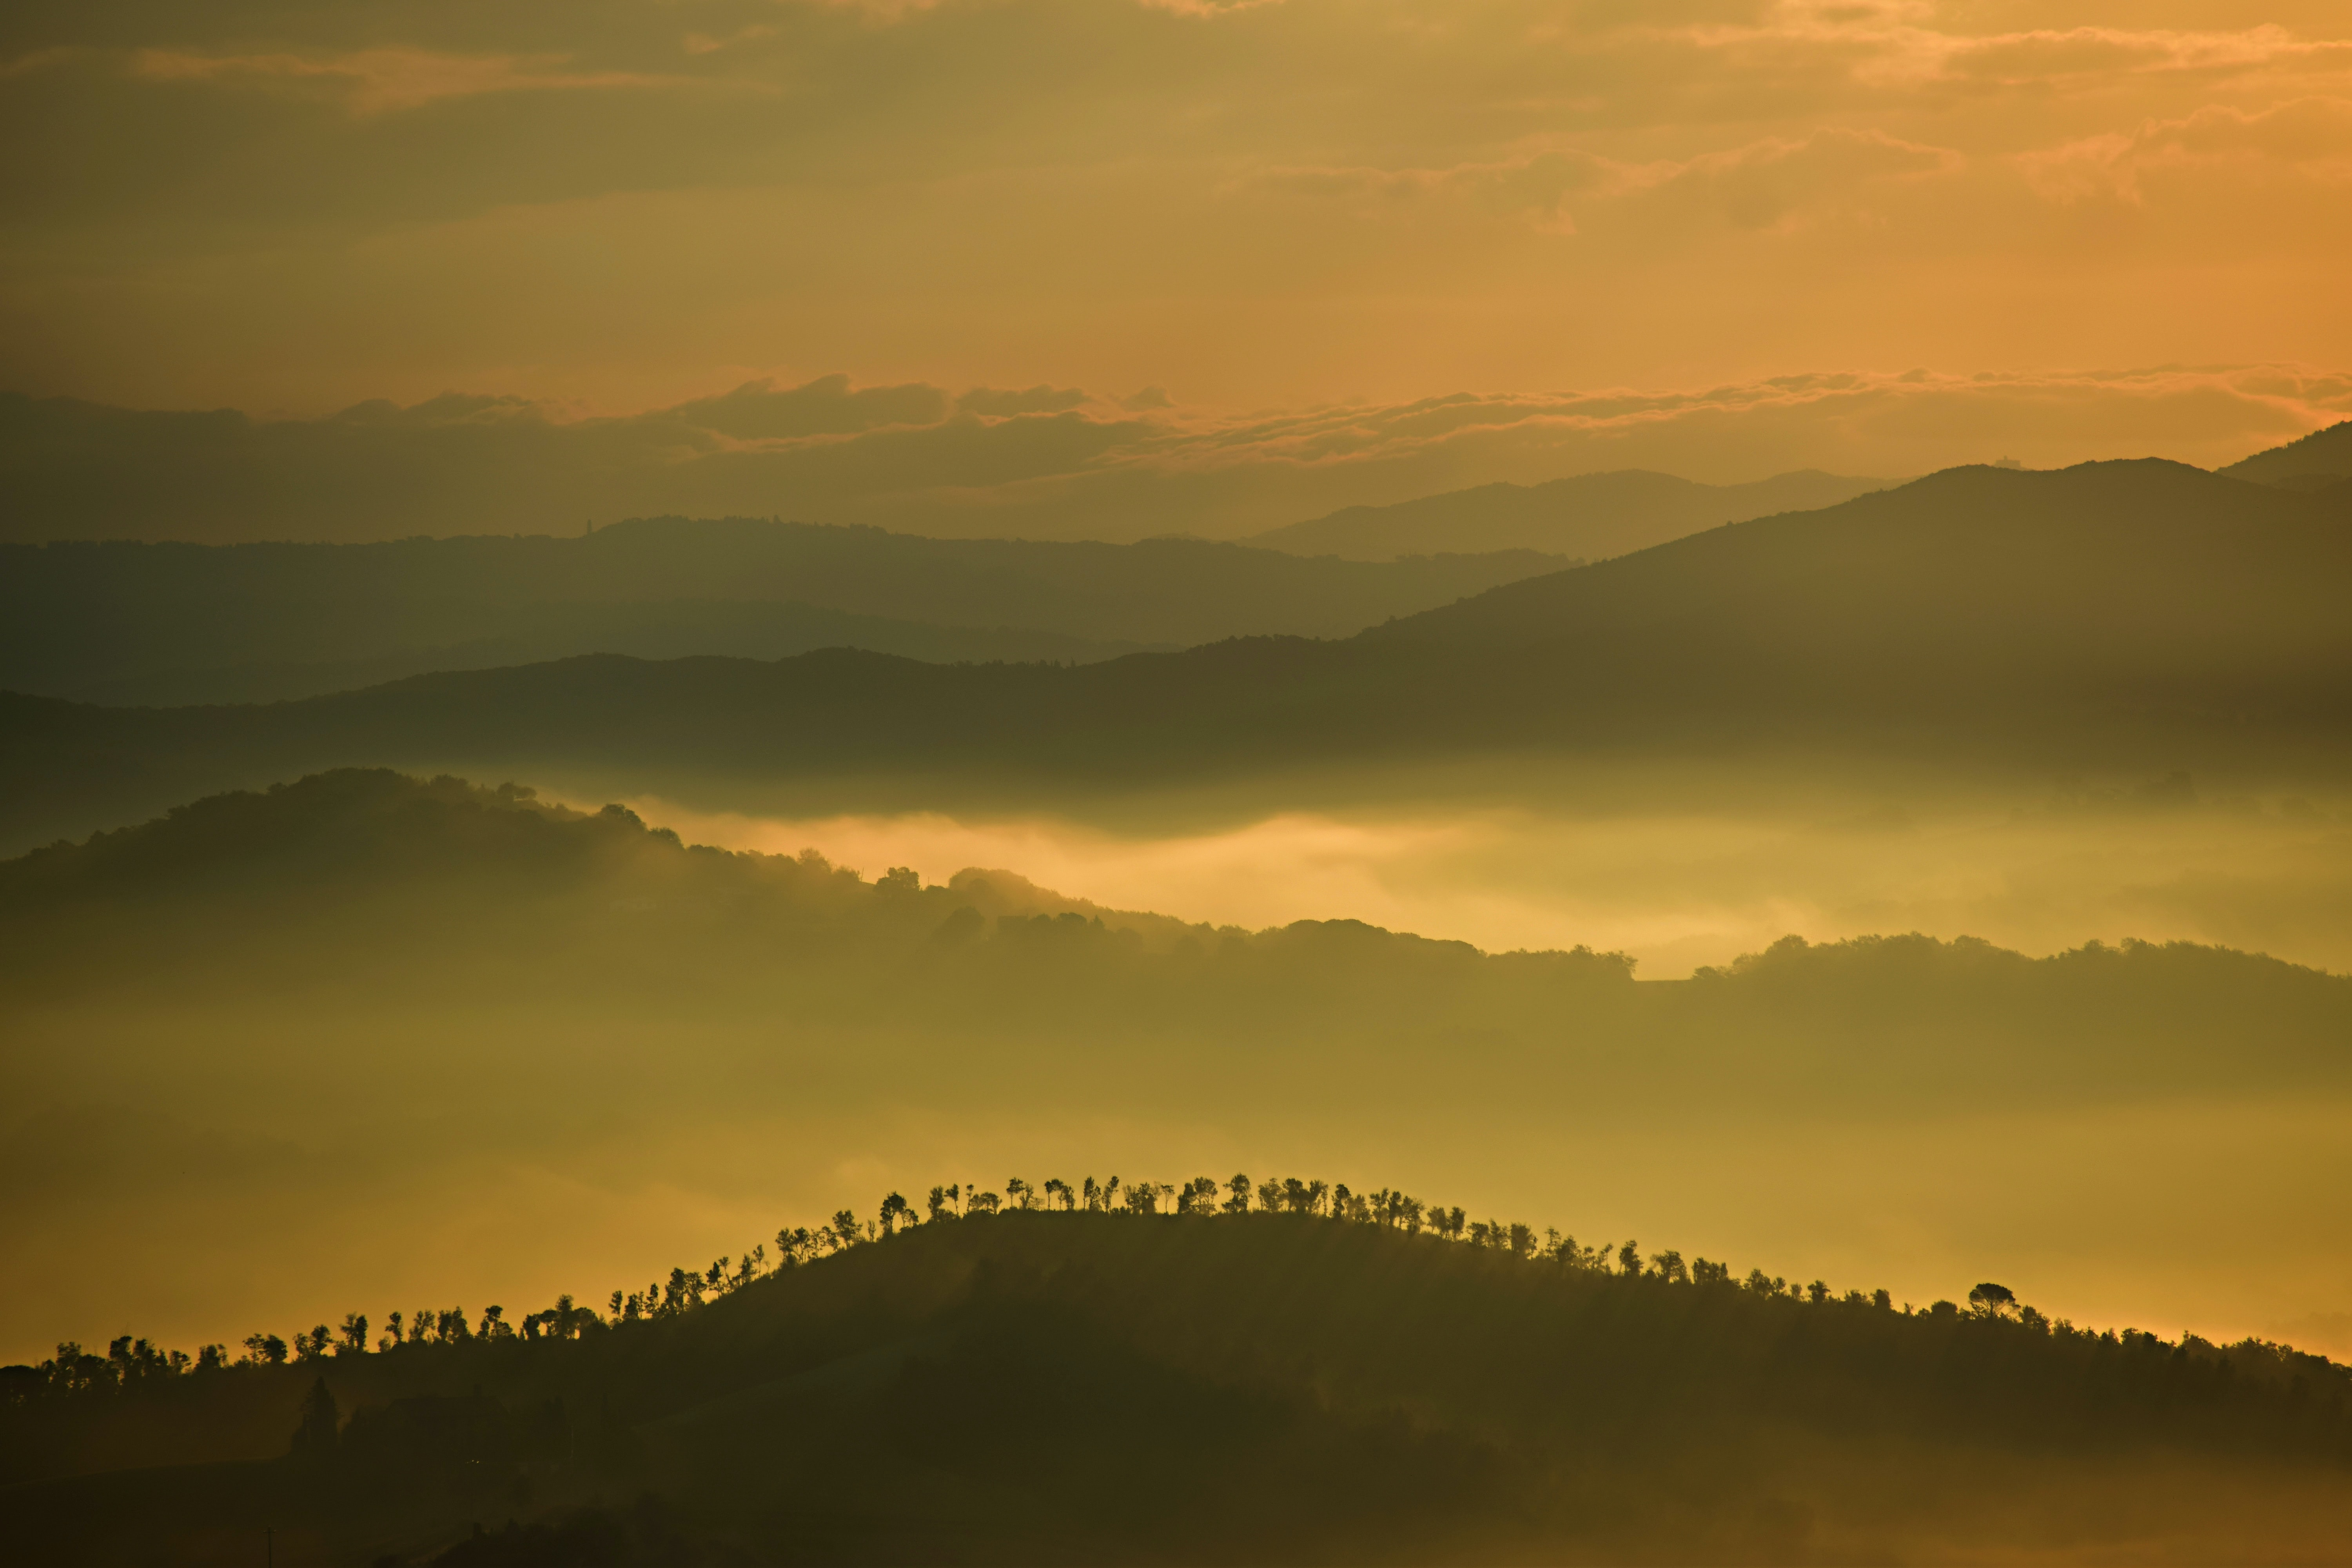 mountain silhouette during cloudy sky